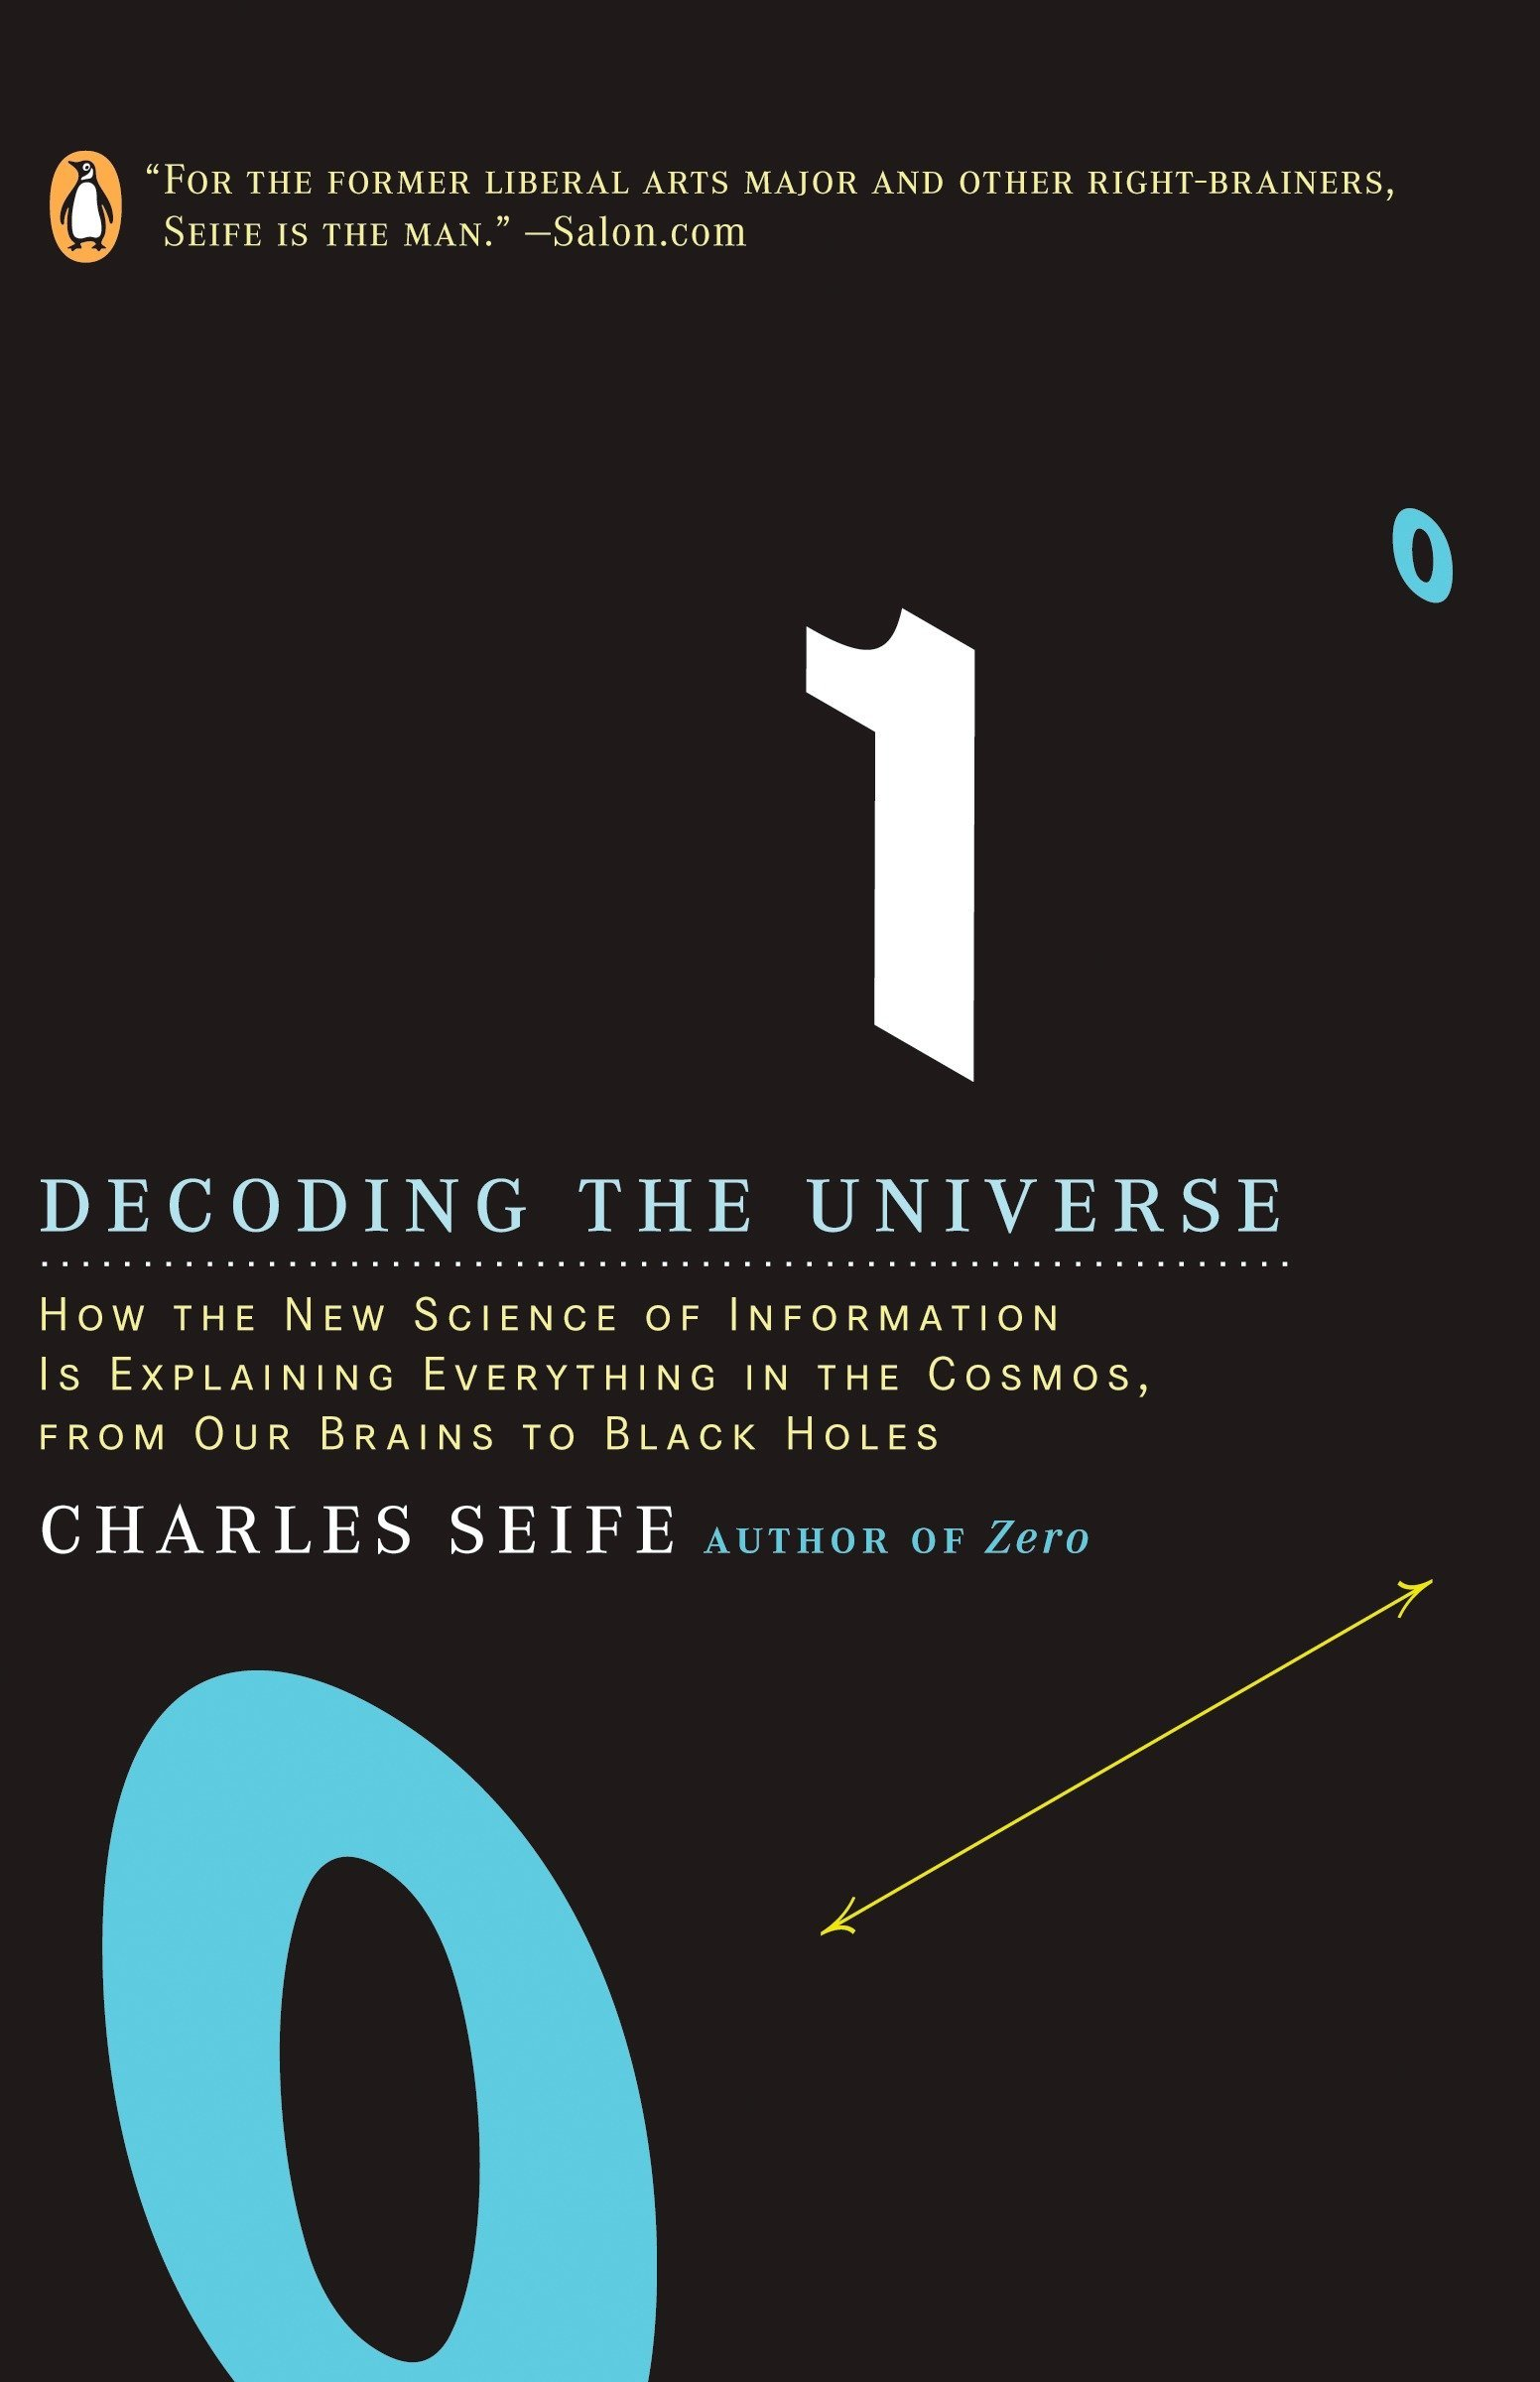 Decoding the Universe: How the New Science of Information Is Explaining Everything in the Cosmos, from Our Brains to Black Holes by Seife, Charles